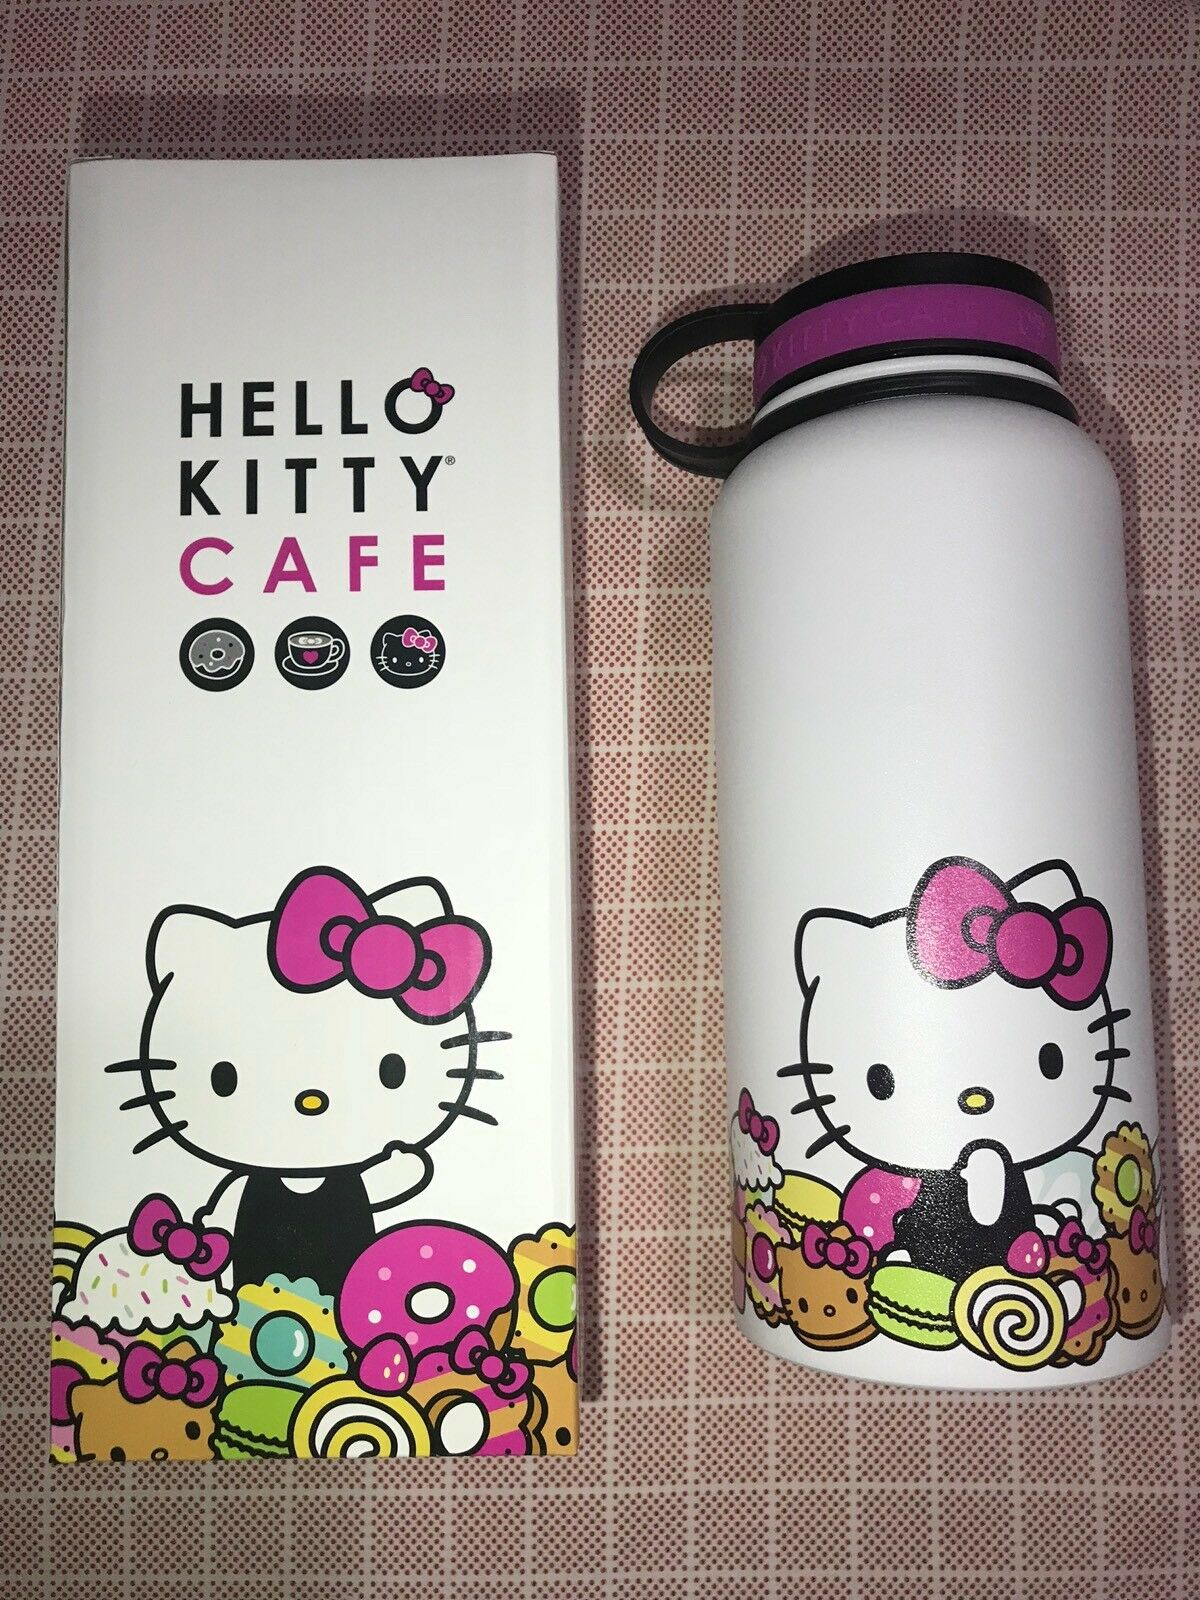 New Hello Kitty Cafe Limited Edition Thermal Thermos Water Bottle Bott Funko Pop Doraemon 1 Of 2 See More